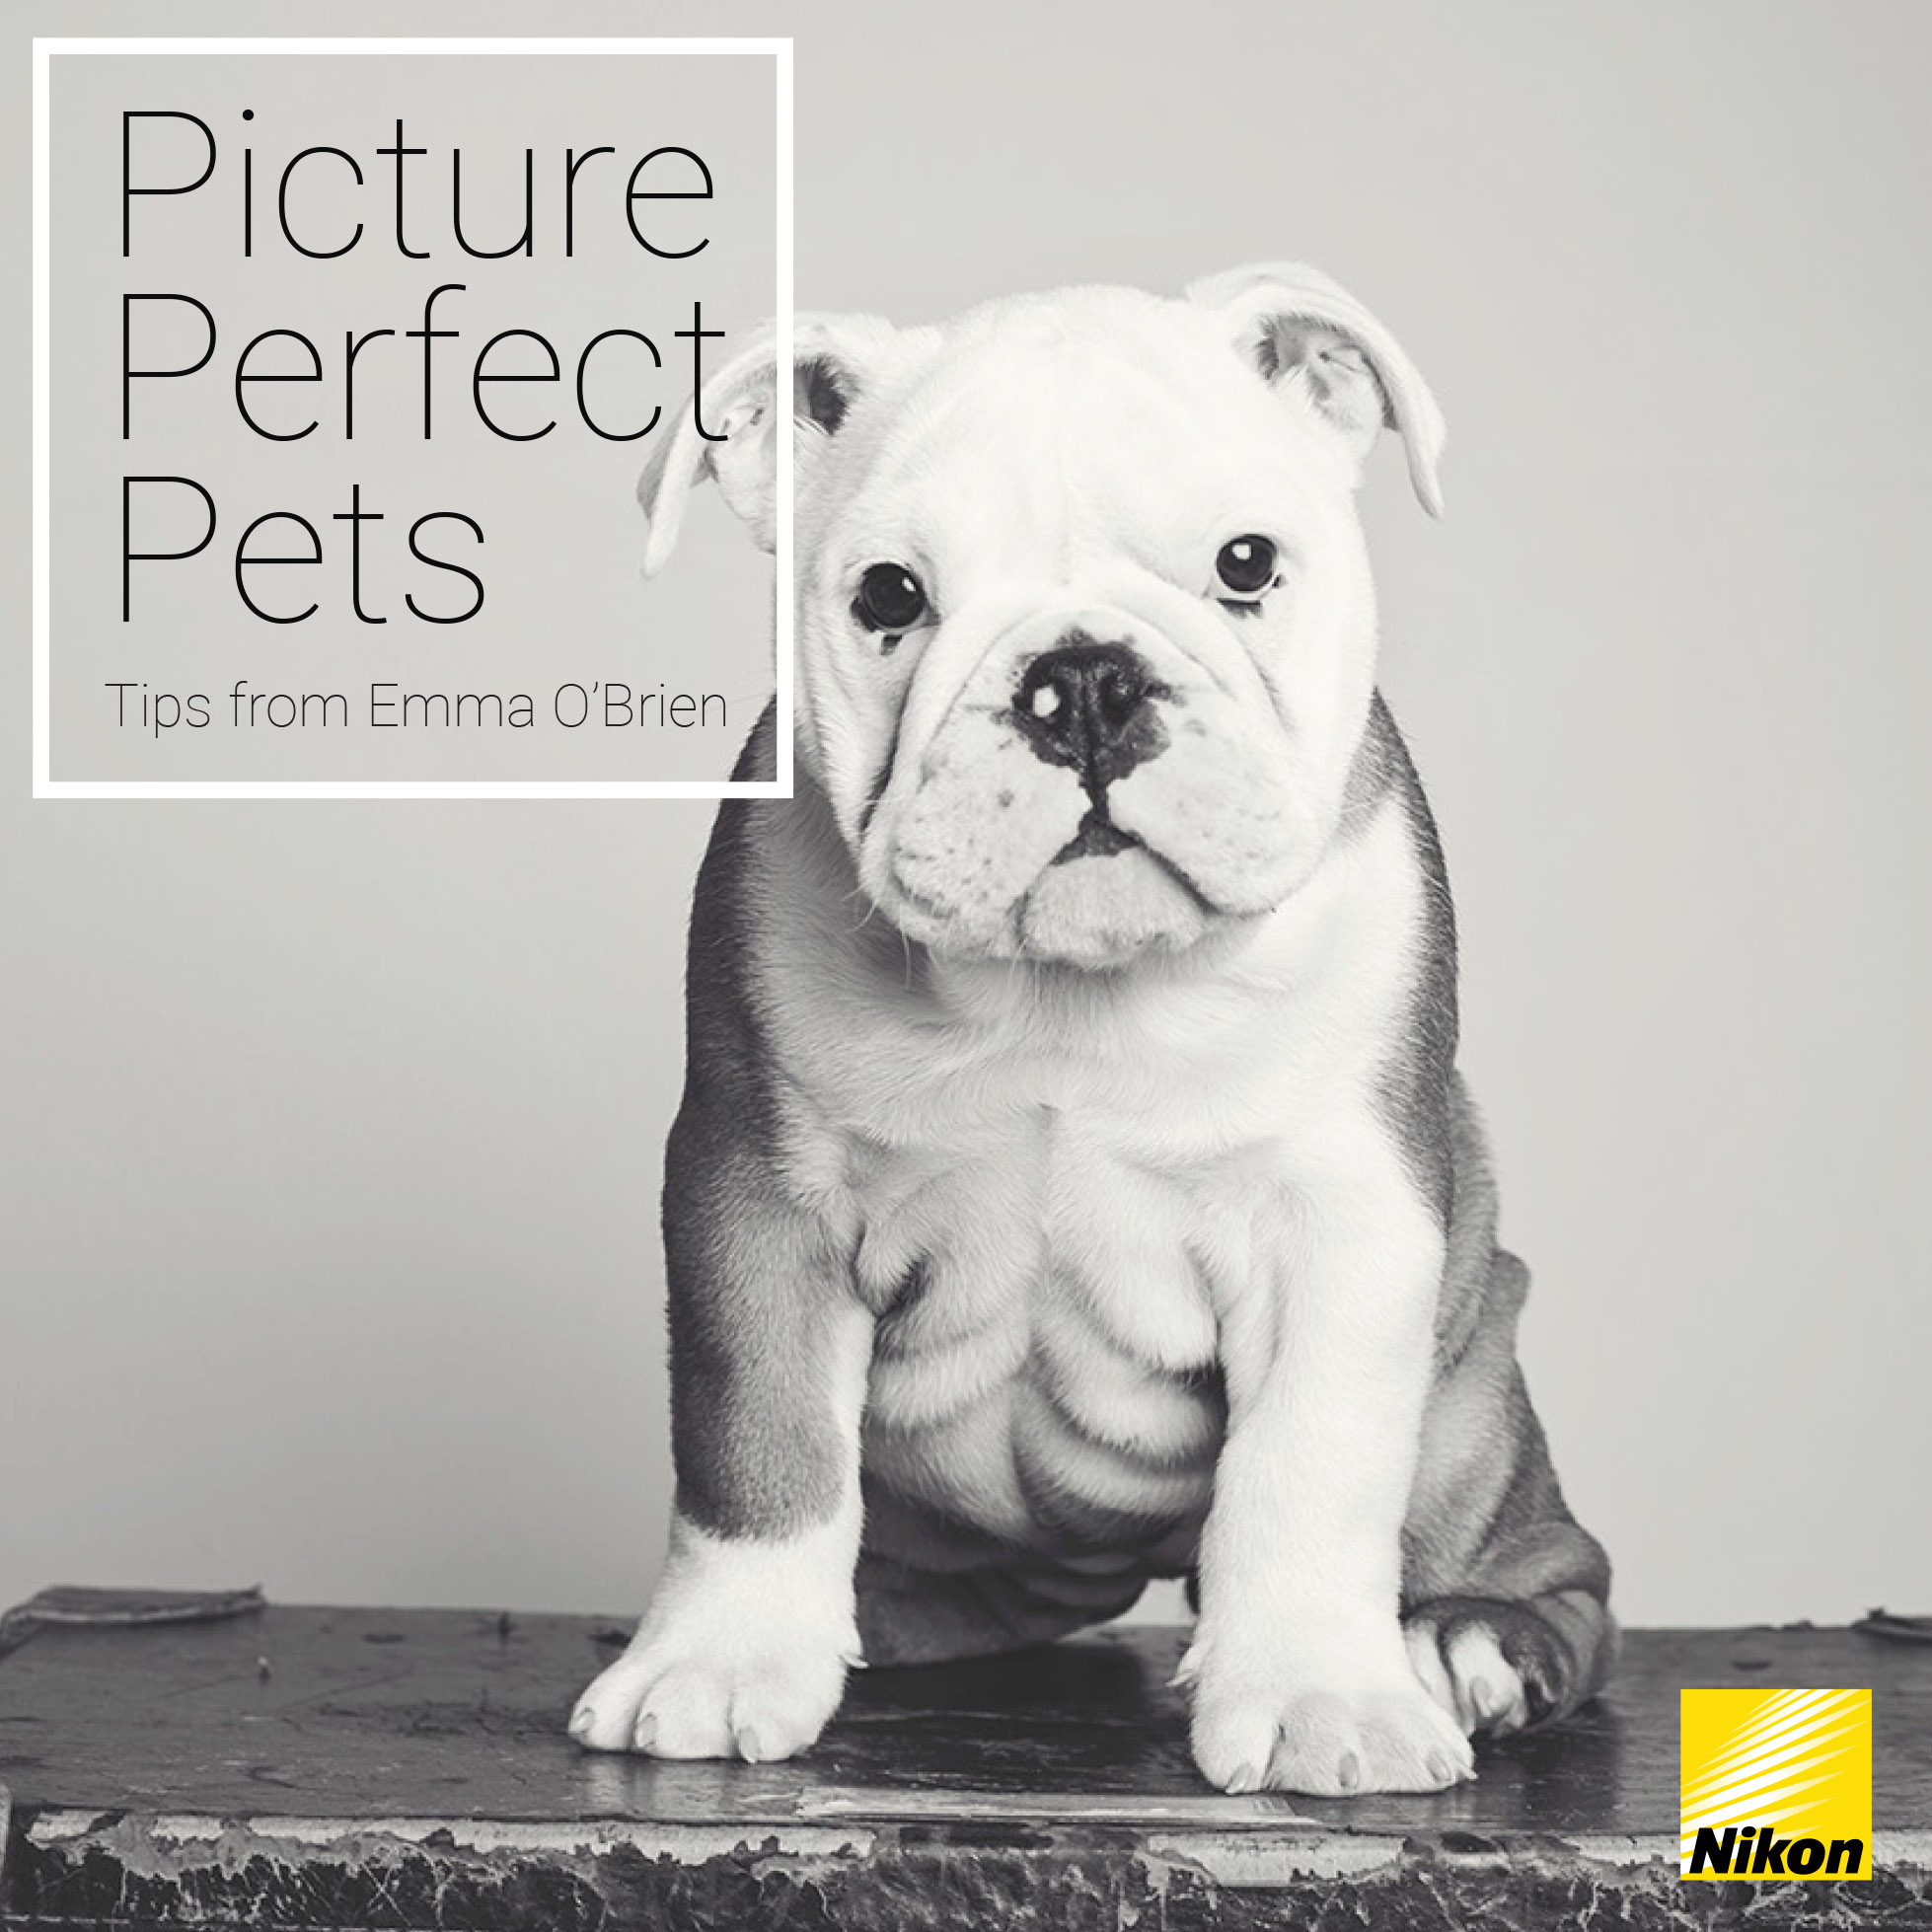 Picture perfect pet with Emma